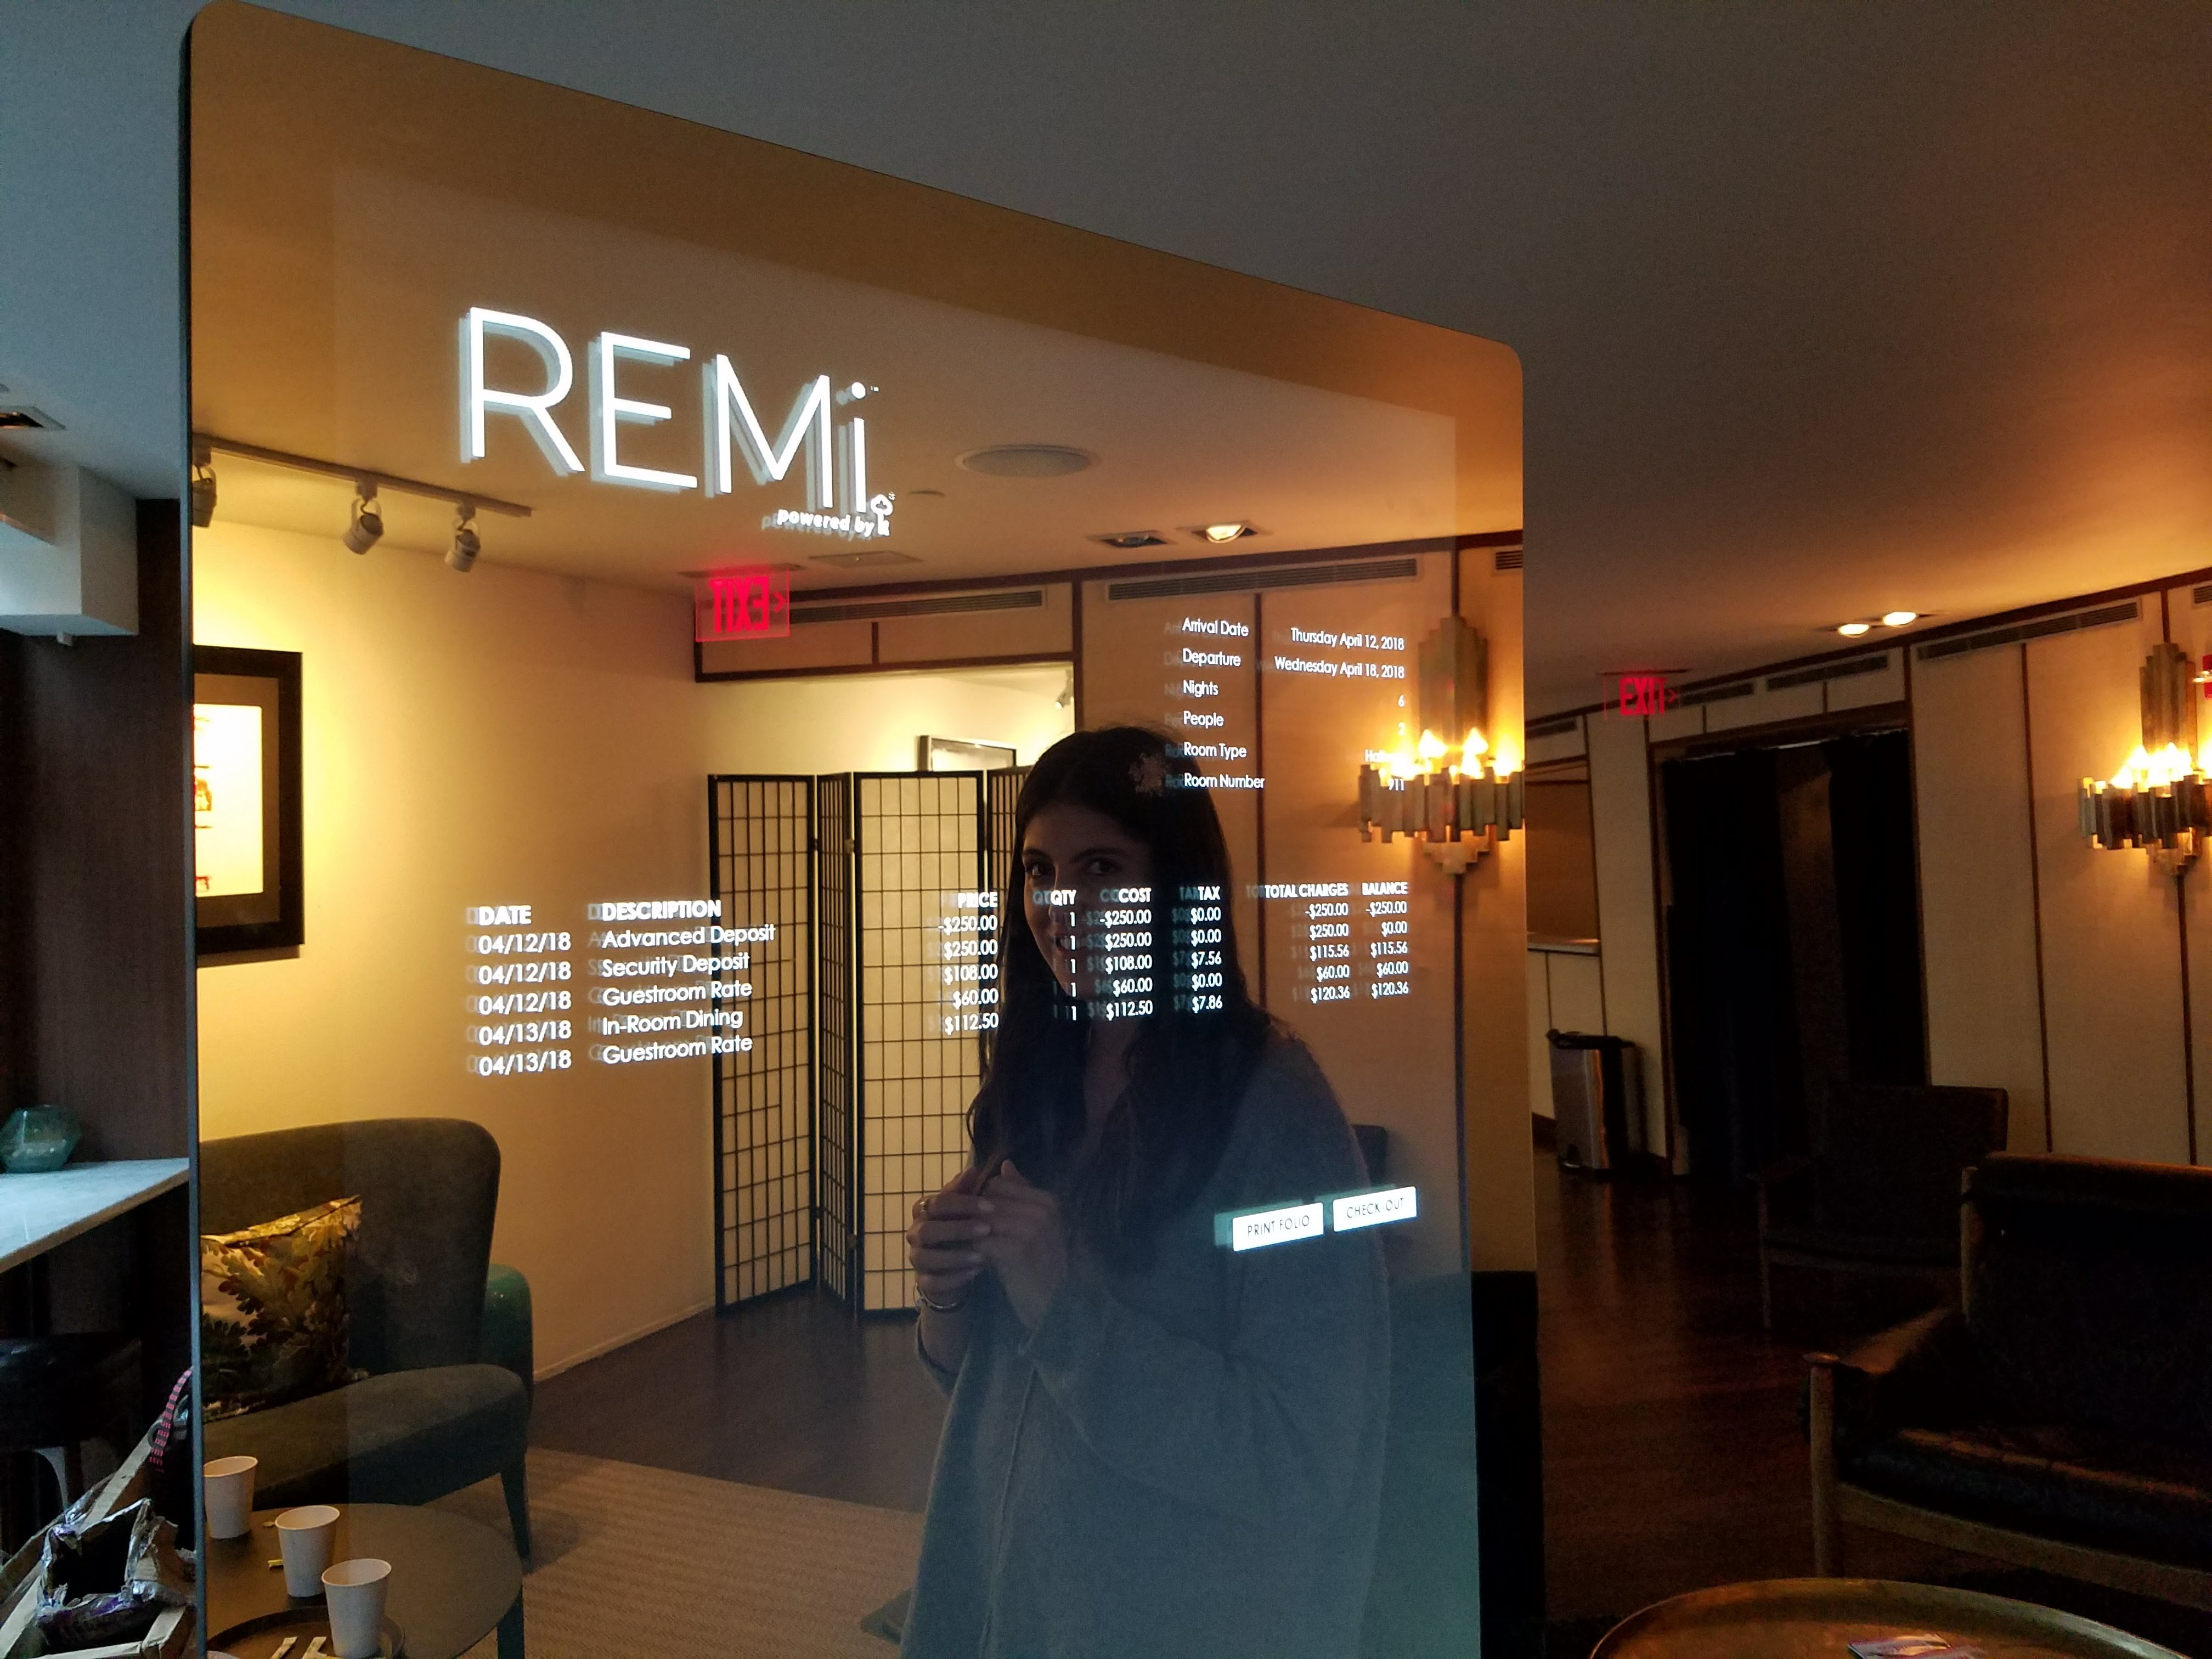 Paige Neugarten demonstrates how guests can use the Remi mirror to check out.